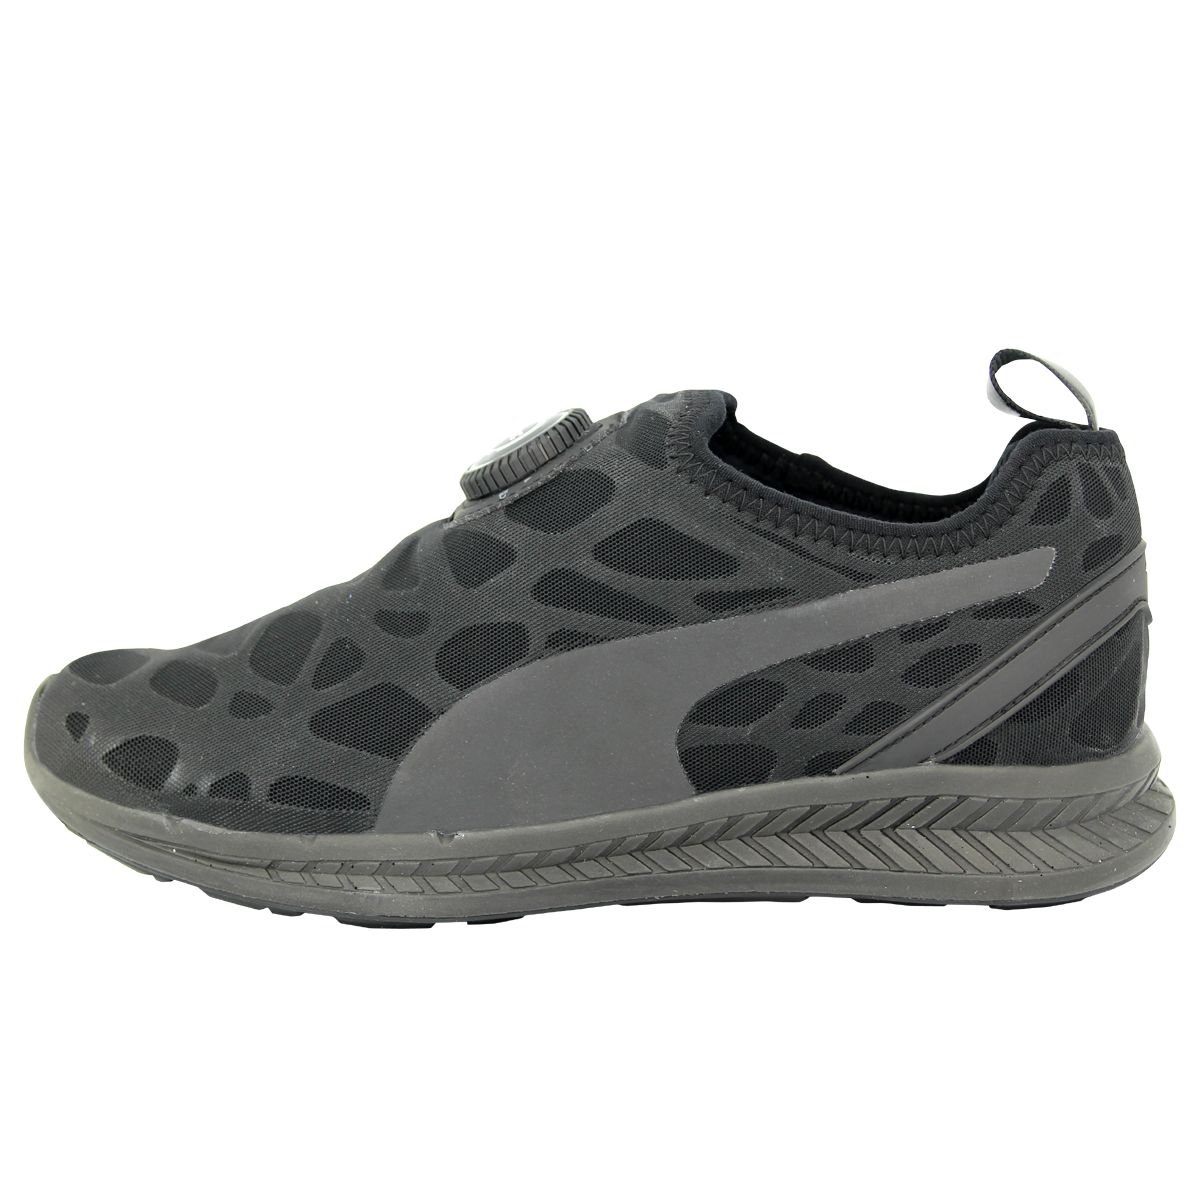 18201e0f1a63 PUMA Ignite Disc Sleeve Street Foam Rihanna Black Mens Running Shoes  360946-01 UK 7. About this product. 4 watching. Picture 1 of 12  Picture 2  of 12 ...